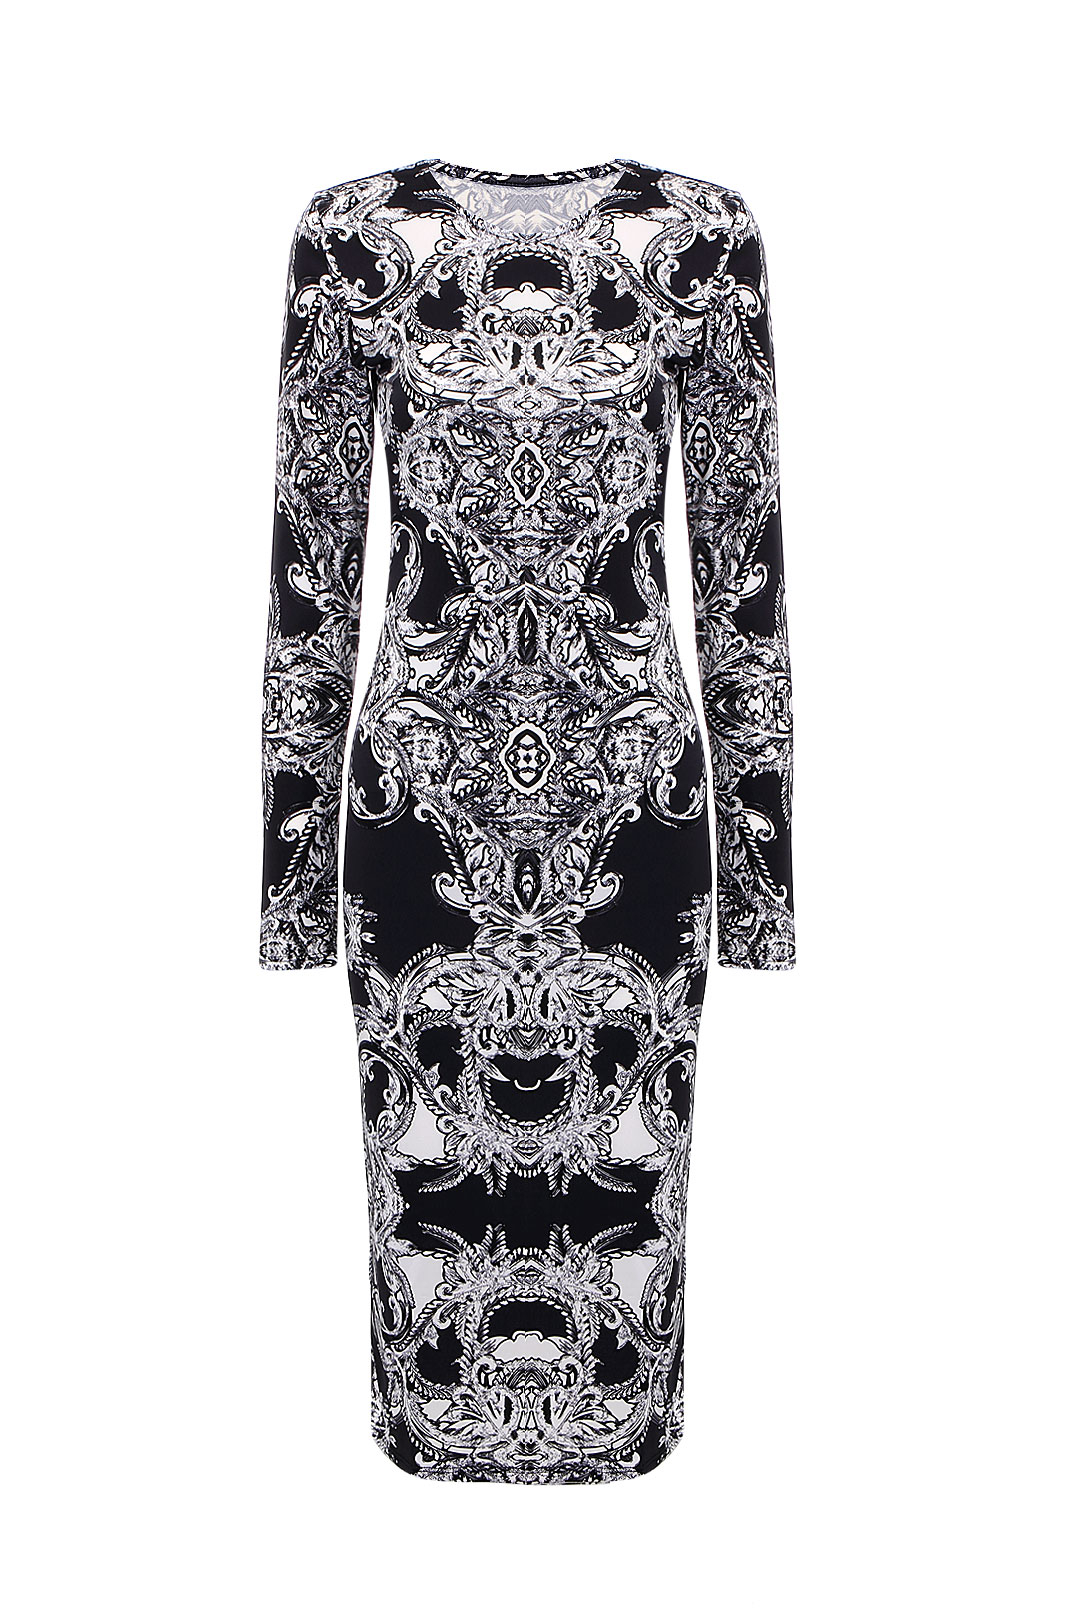 Vintage Floral Dress in Black and White